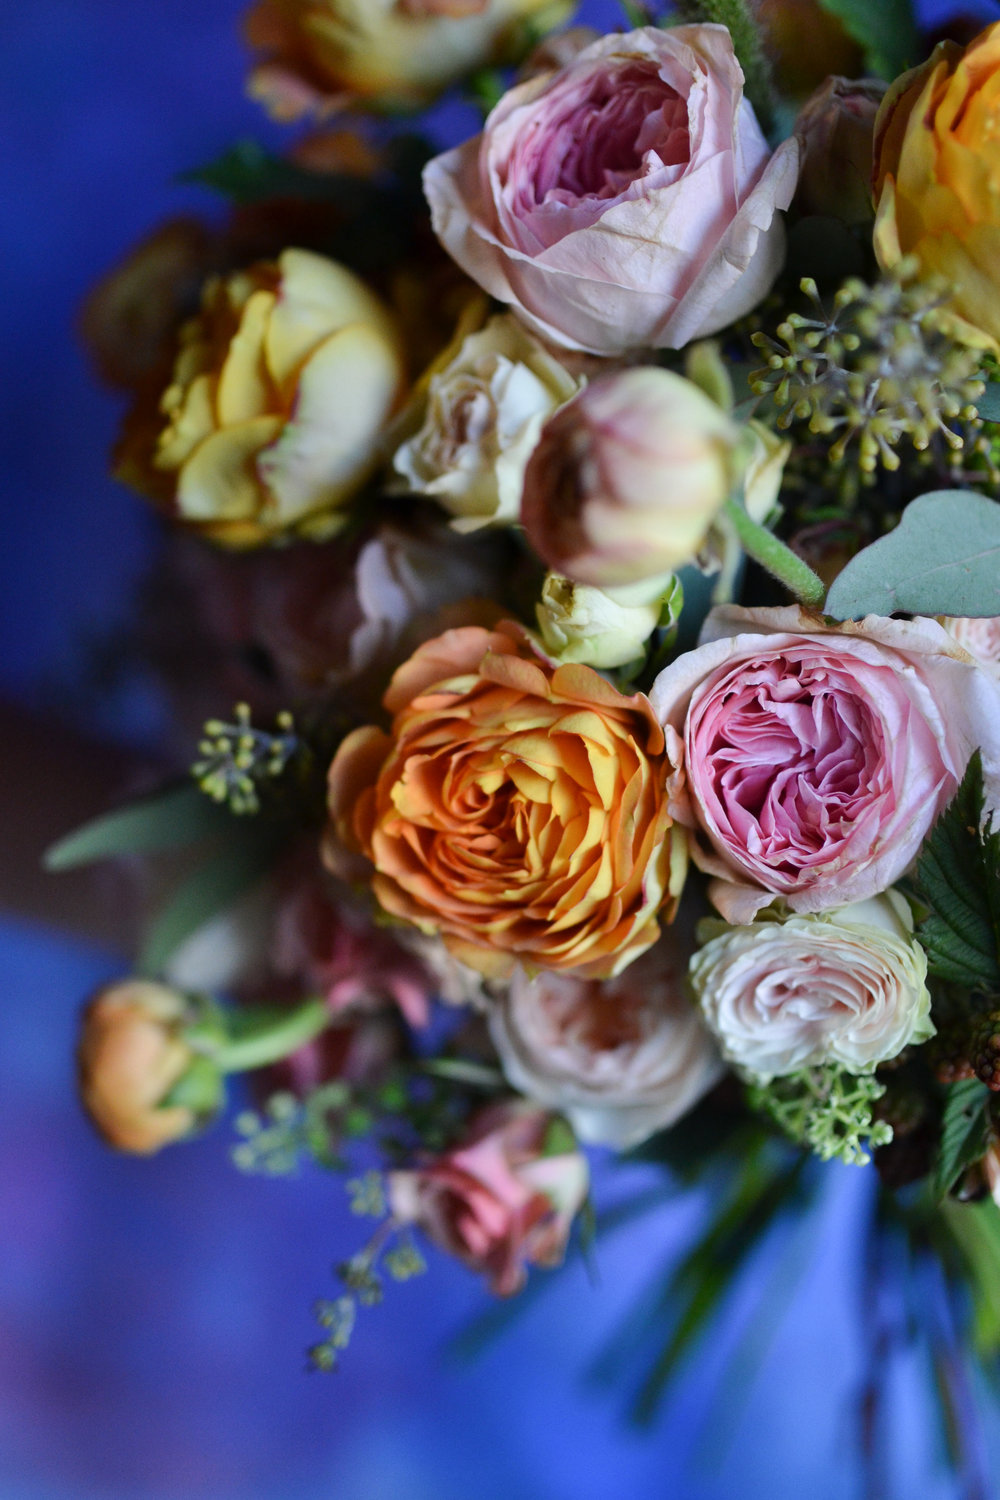 Up close and personal with the bridal bouquet